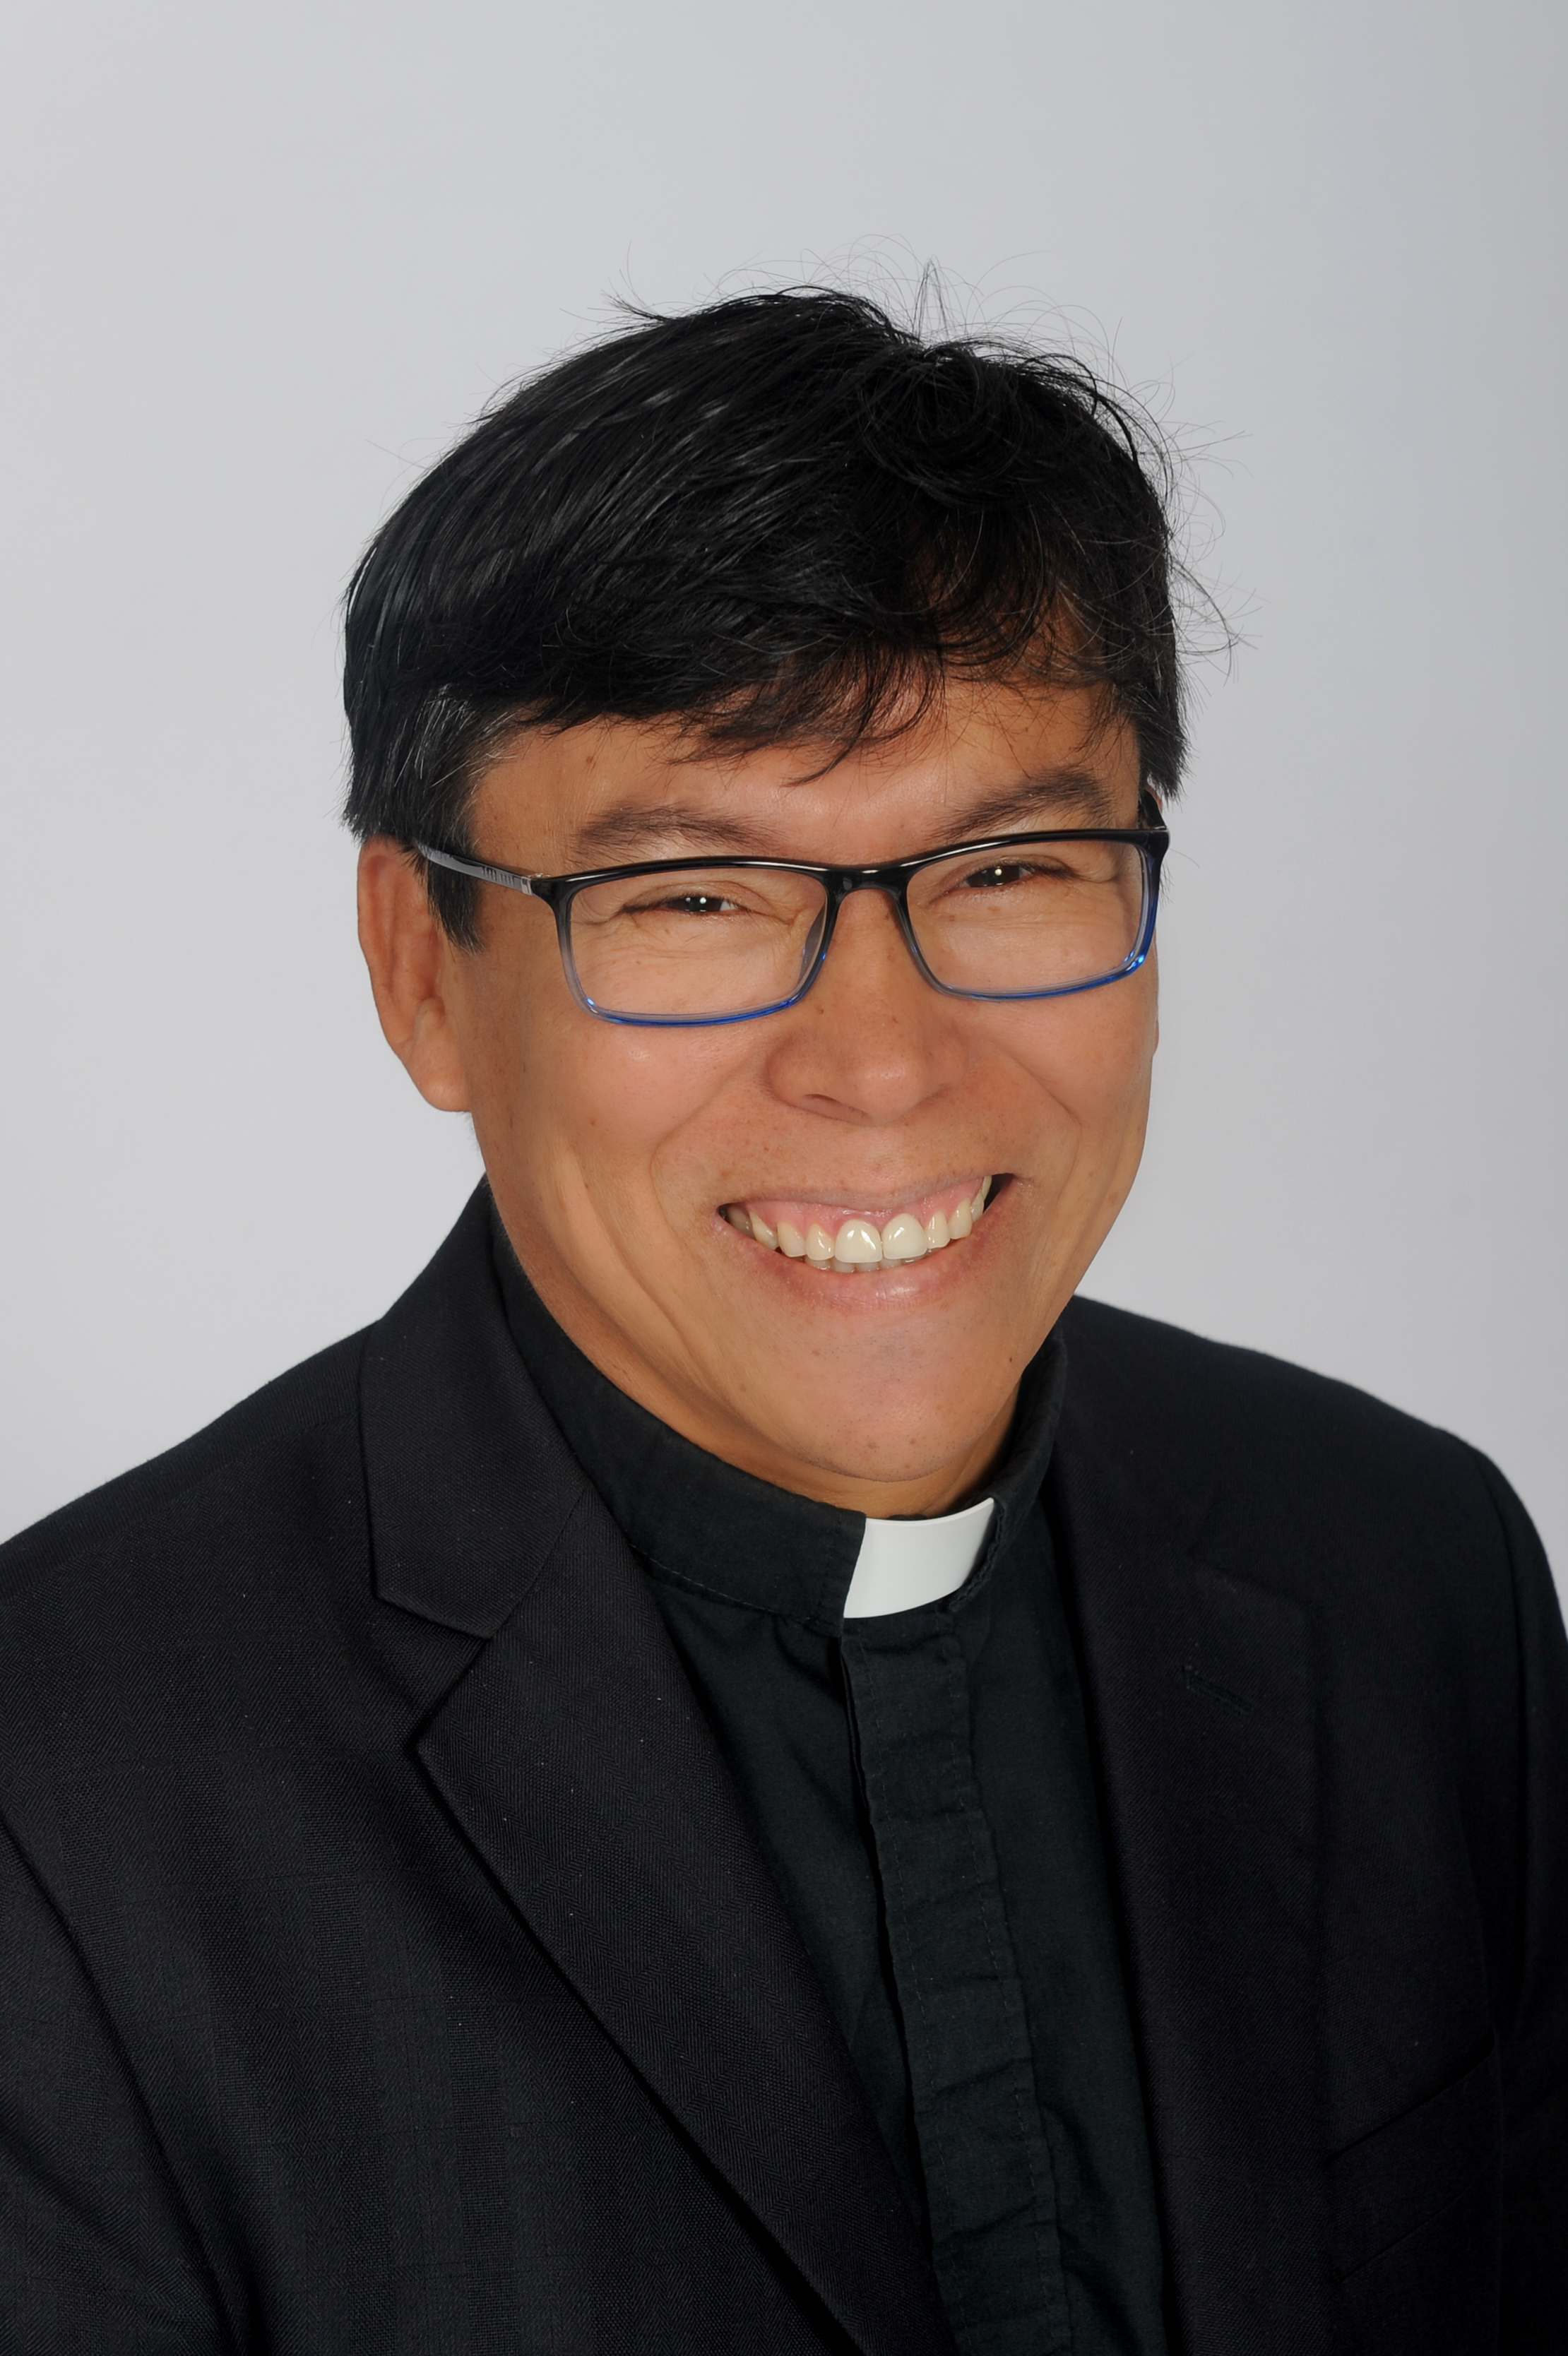 Father Jose Quilcate